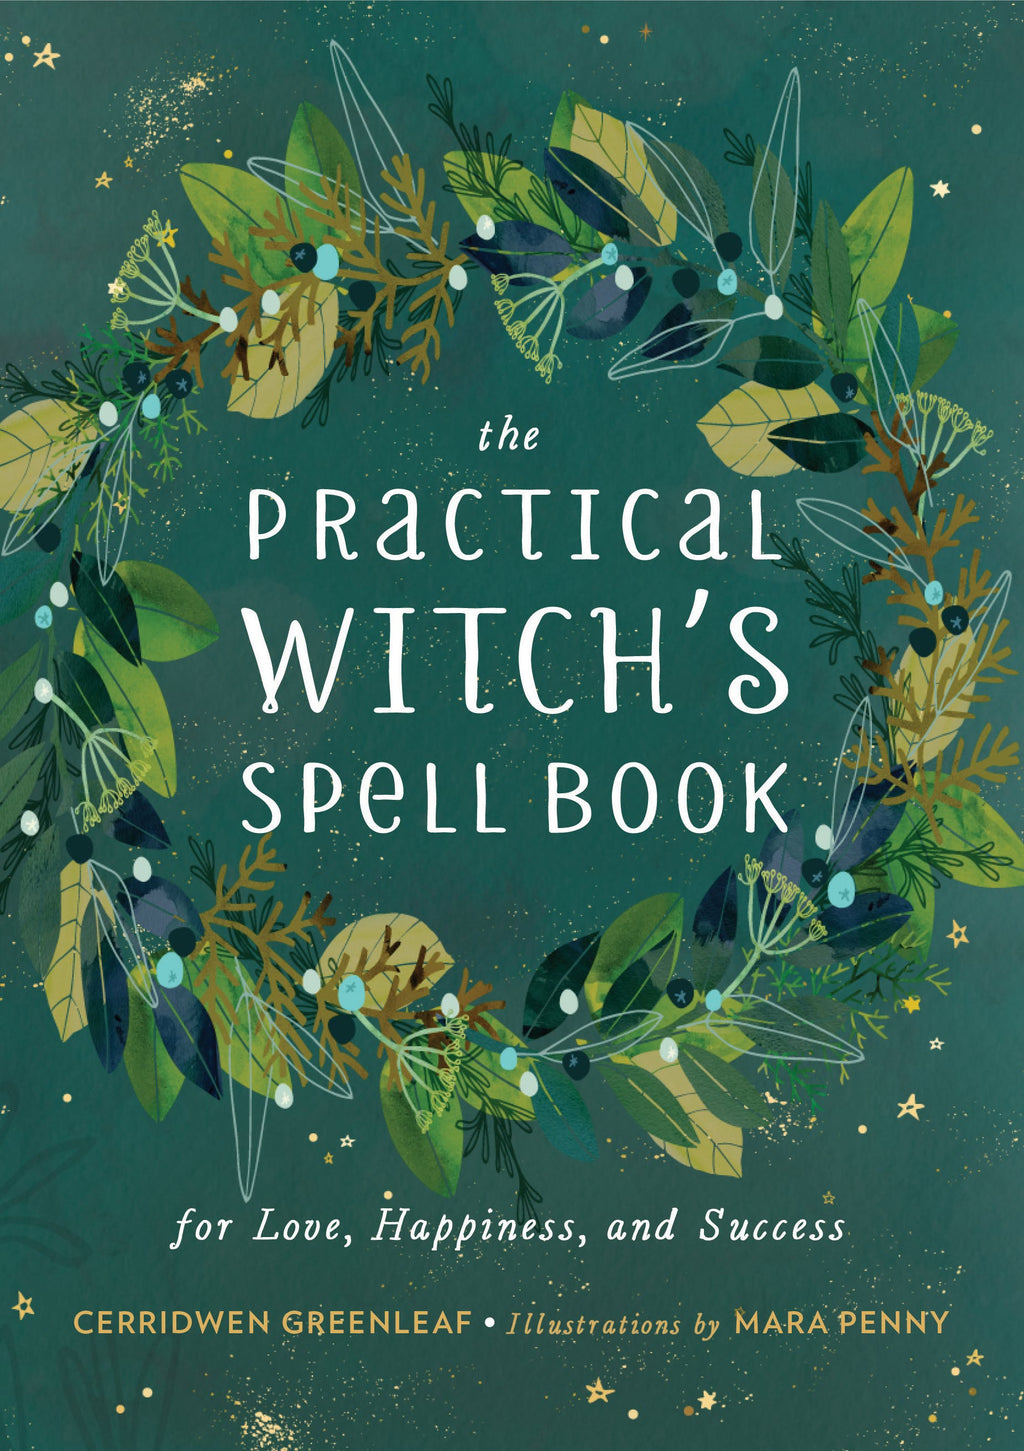 Practical Witch's Spell Deck by Cerridwen Greenleaf